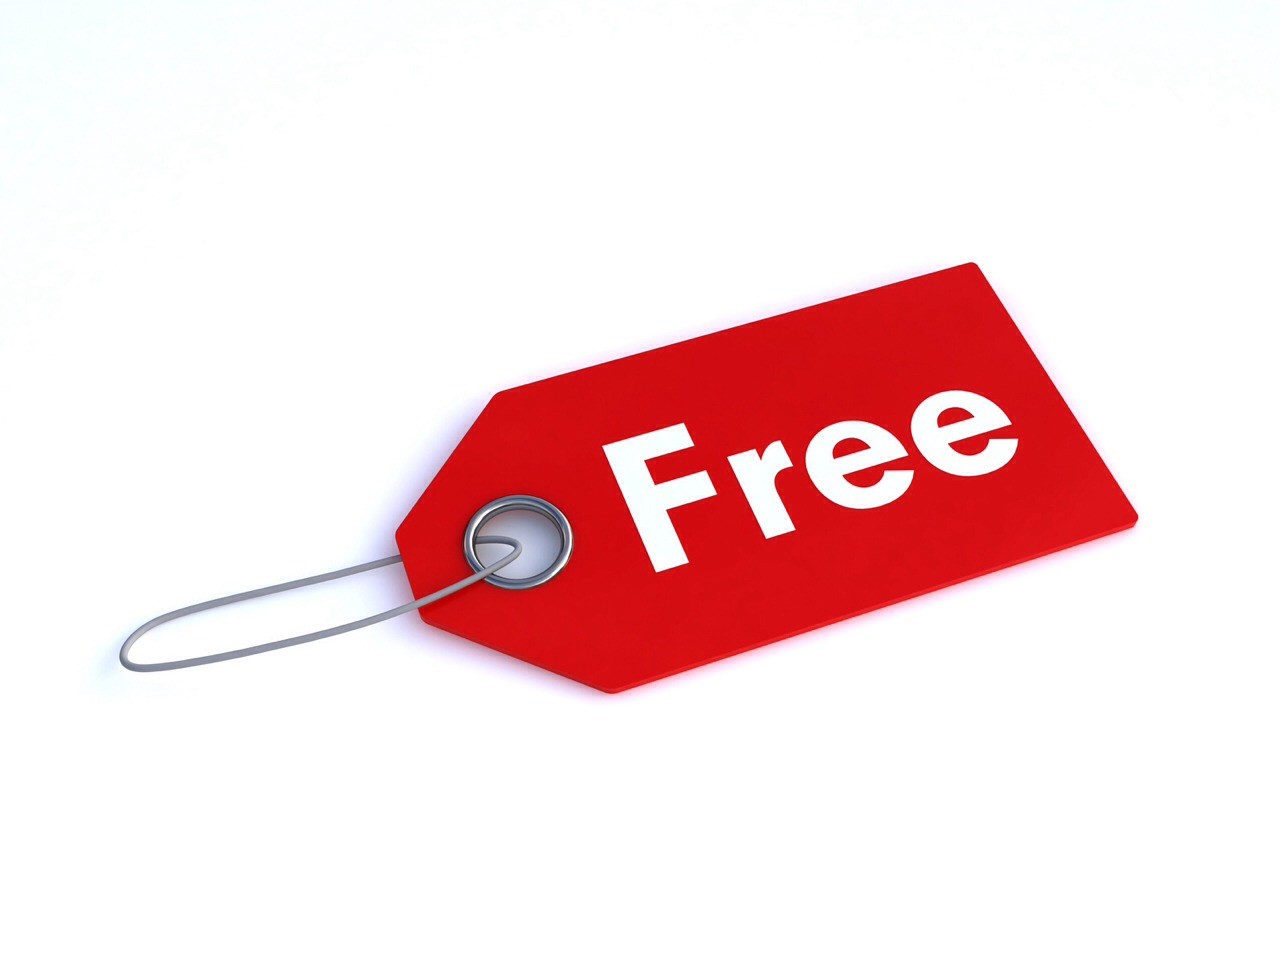 Emailing large companies about your dissatisfaction with their products could get you free stuff